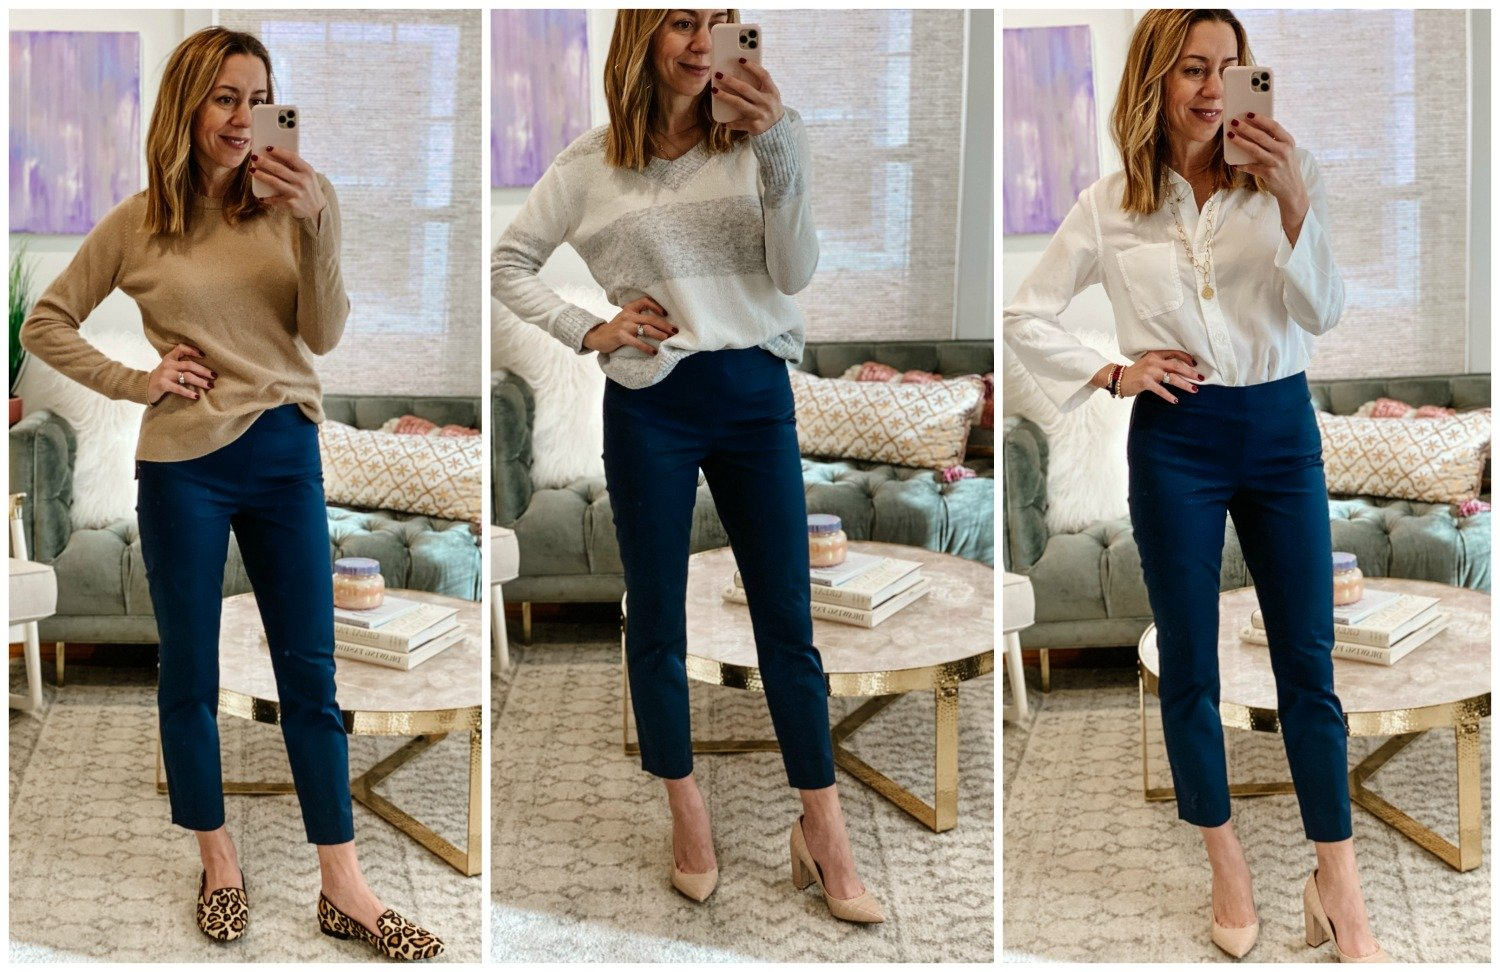 The Motherchic wearing Everlane work pants